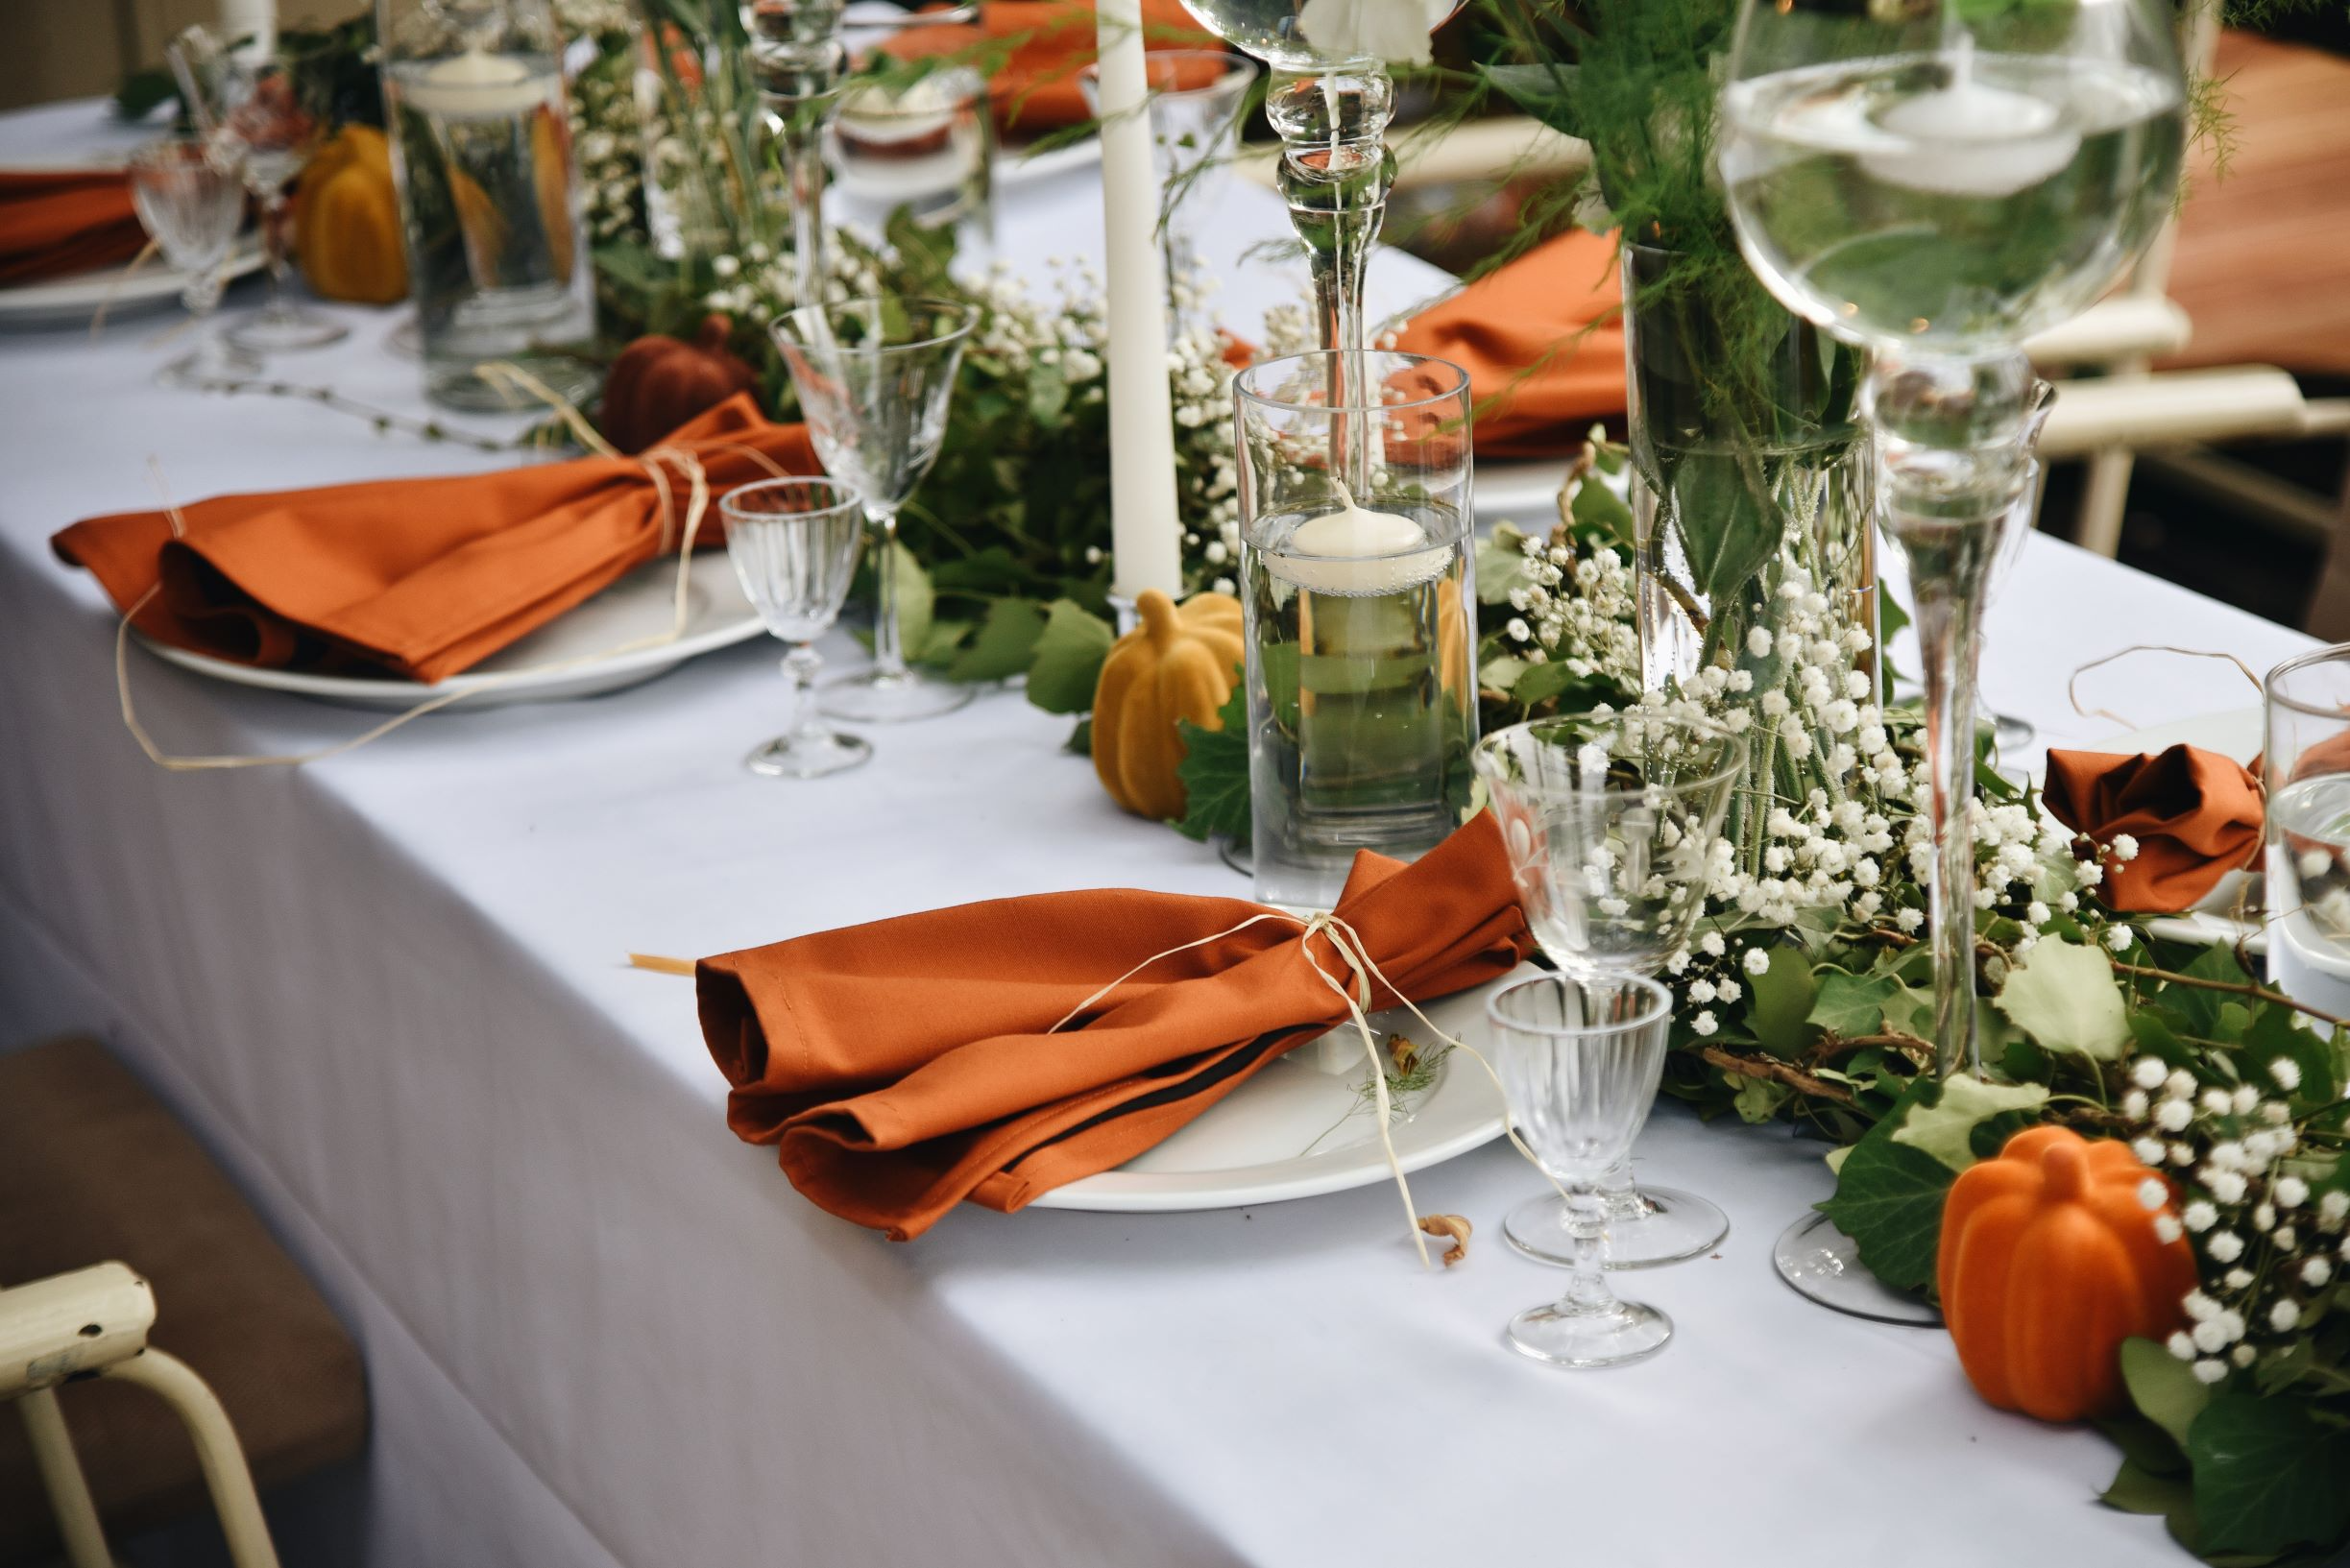 Thanksgiving table in white linens and orange napkins.